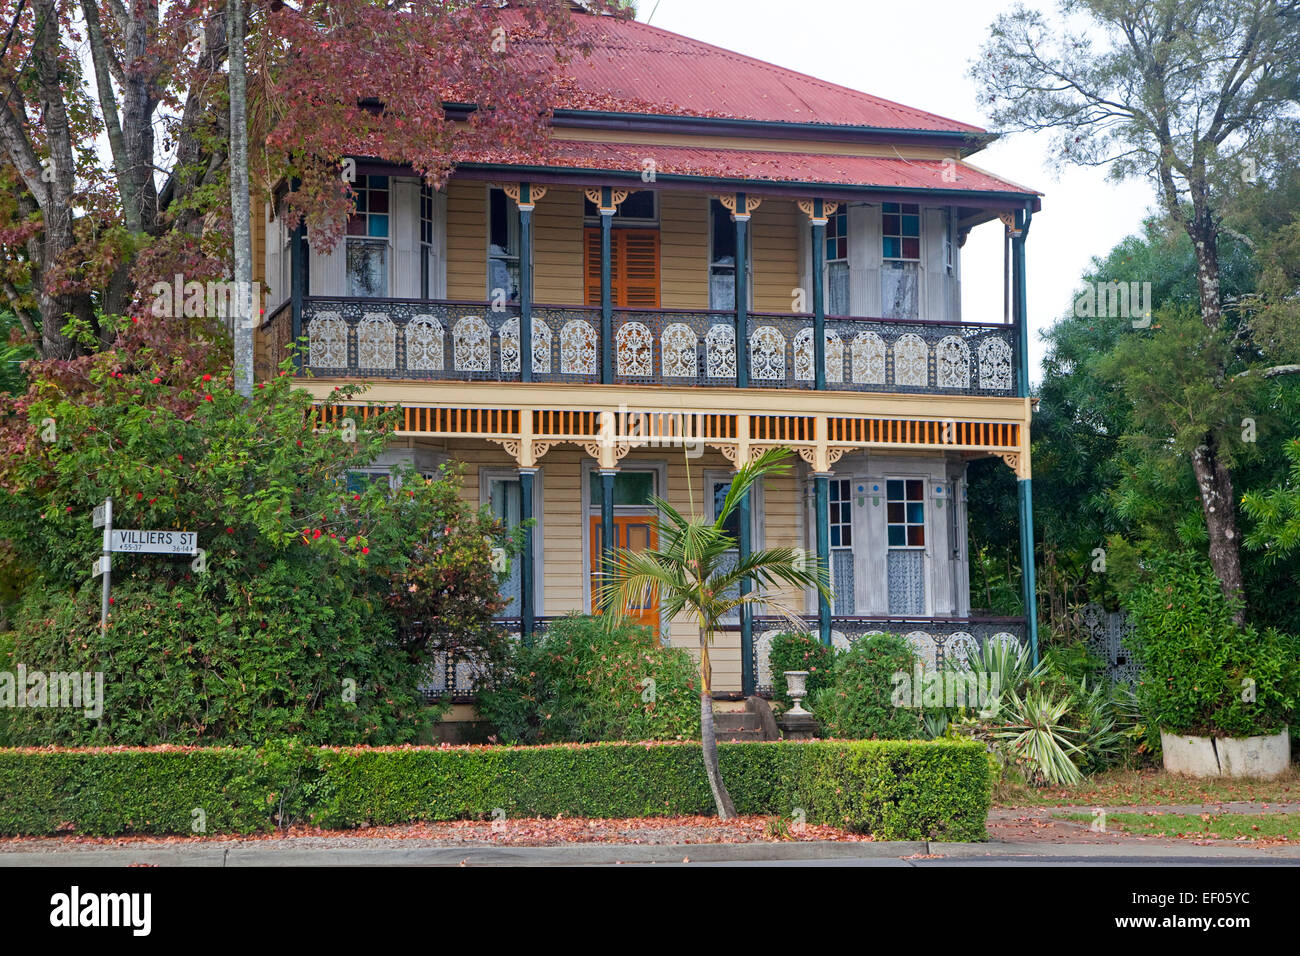 Colourful traditional British colonial house in Grafton, New South Wales, Australia Stock Photo